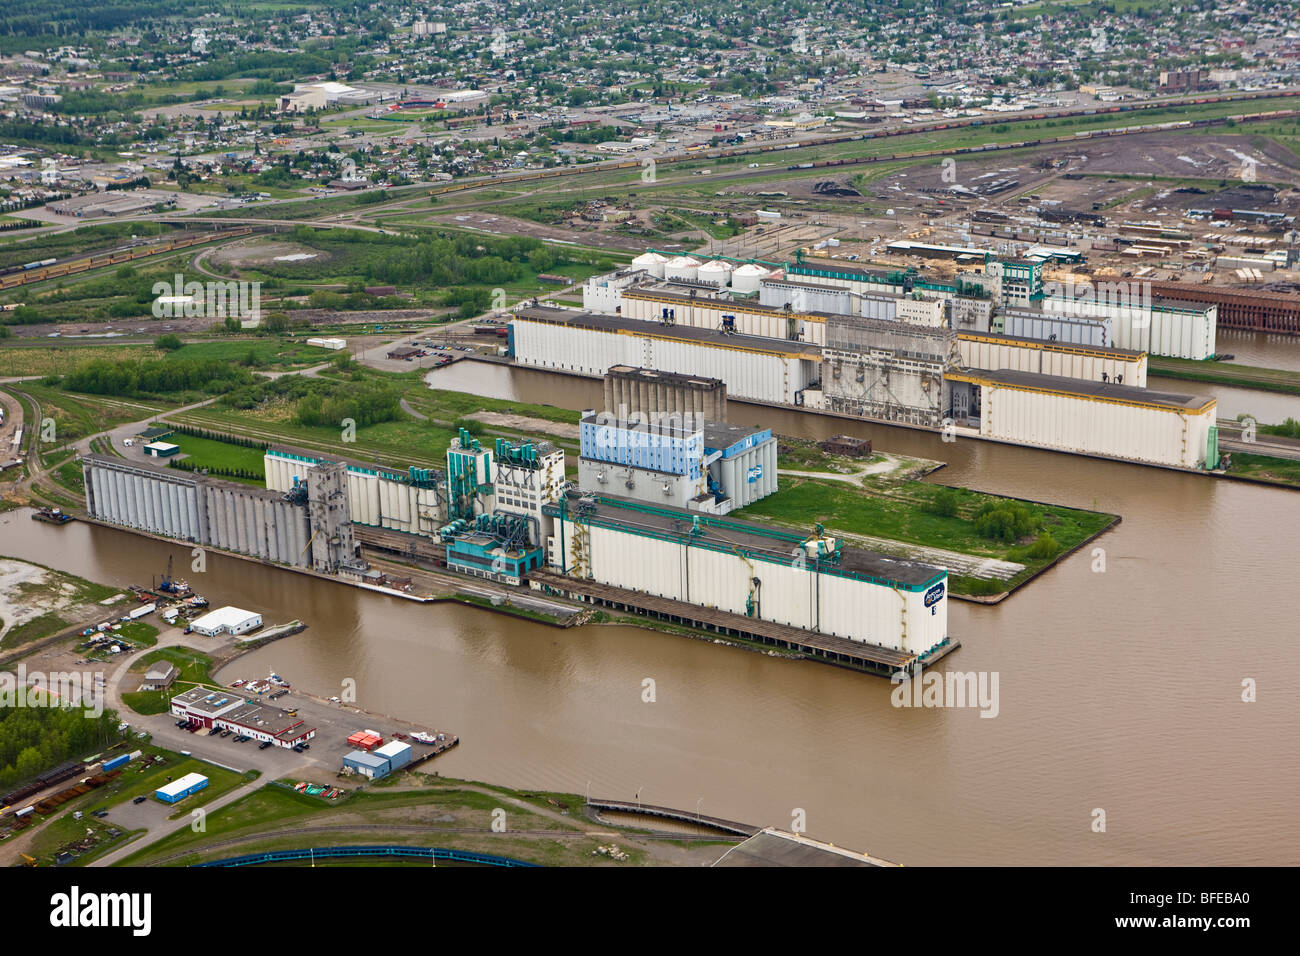 Grain elevators at the ship terminals along the Lake Superior waterfront in the city of Thunder Bay, Ontario, Canada - Stock Image